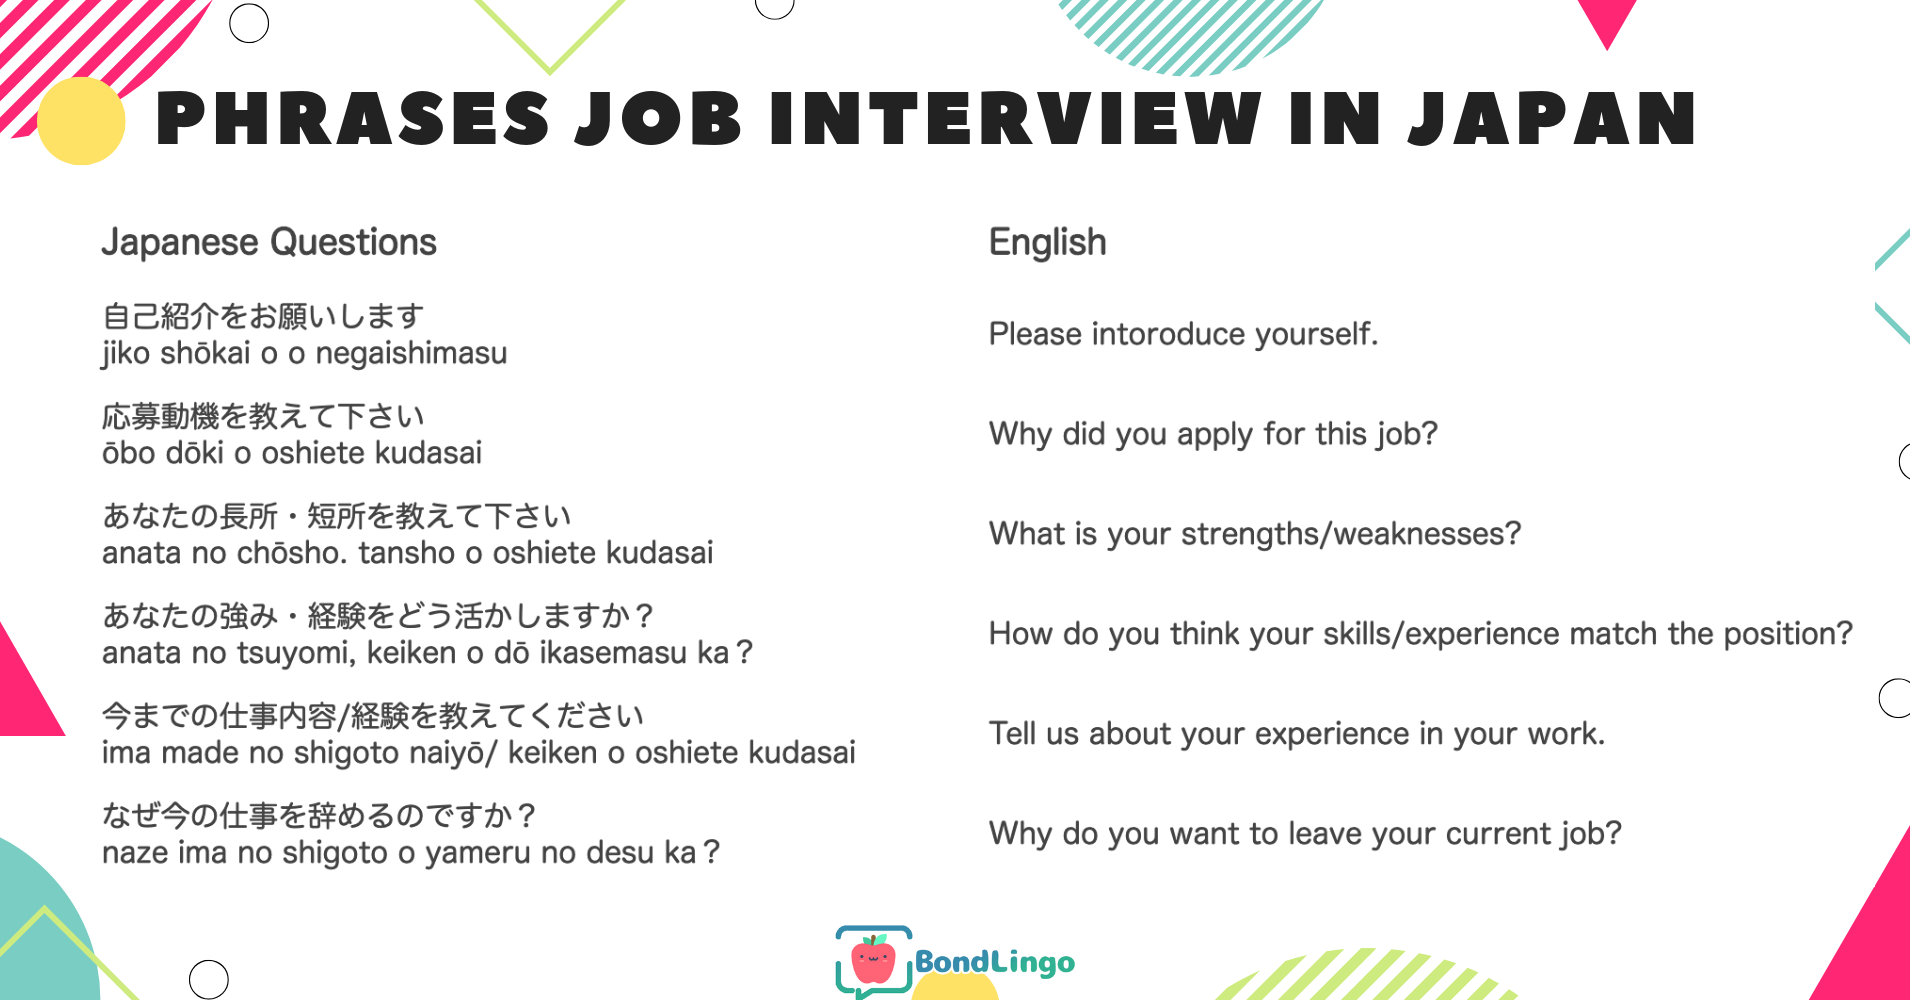 Useful 10 Japanese Phrases related to job interview in Japan